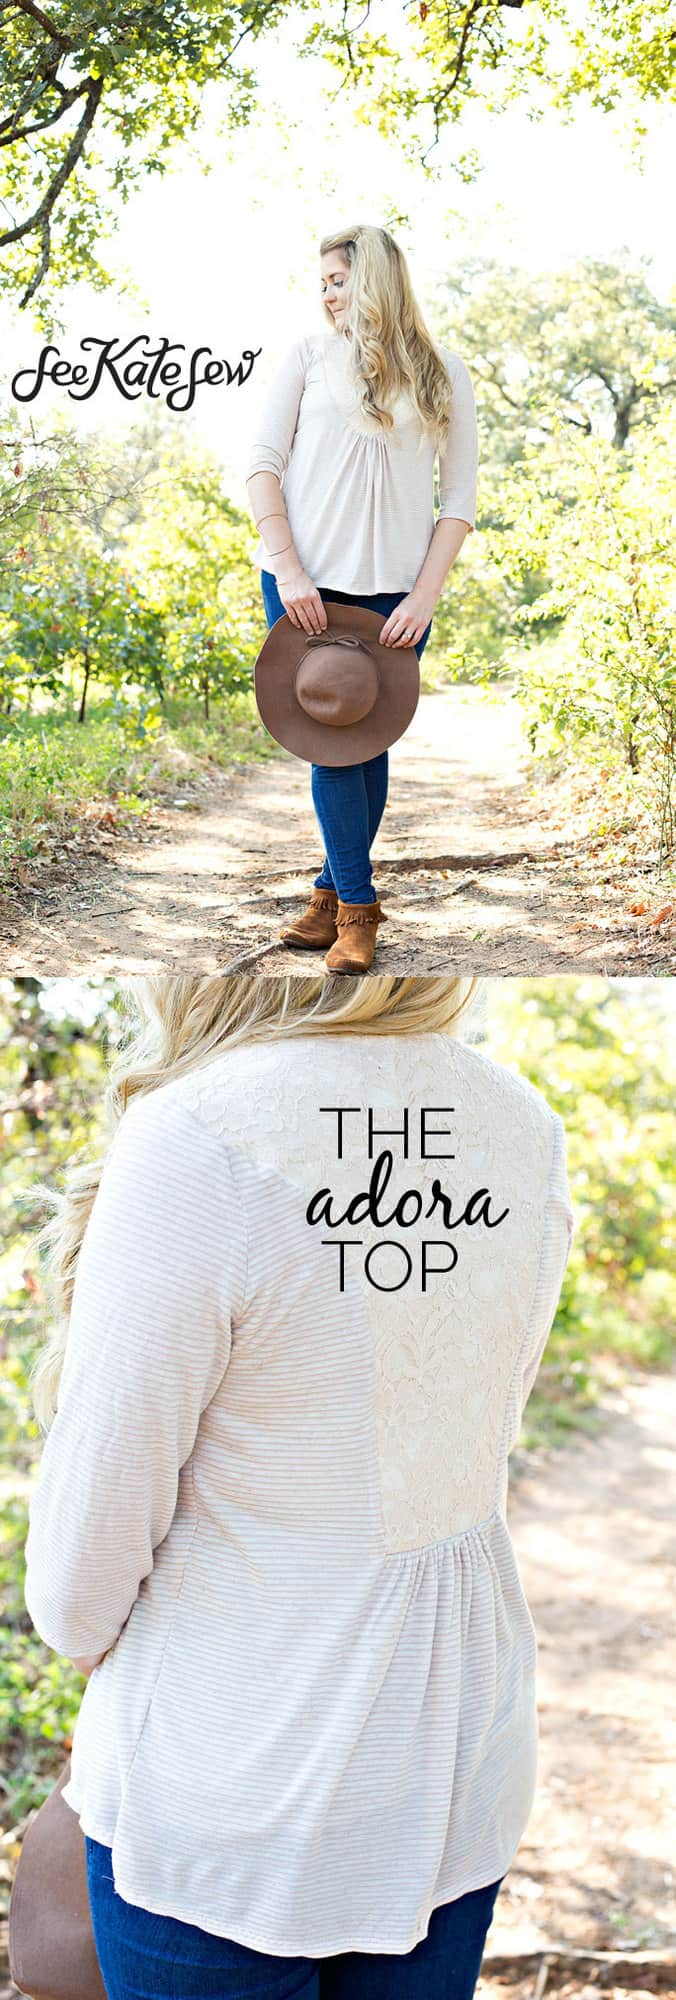 The Adora Top | See Kate Sew